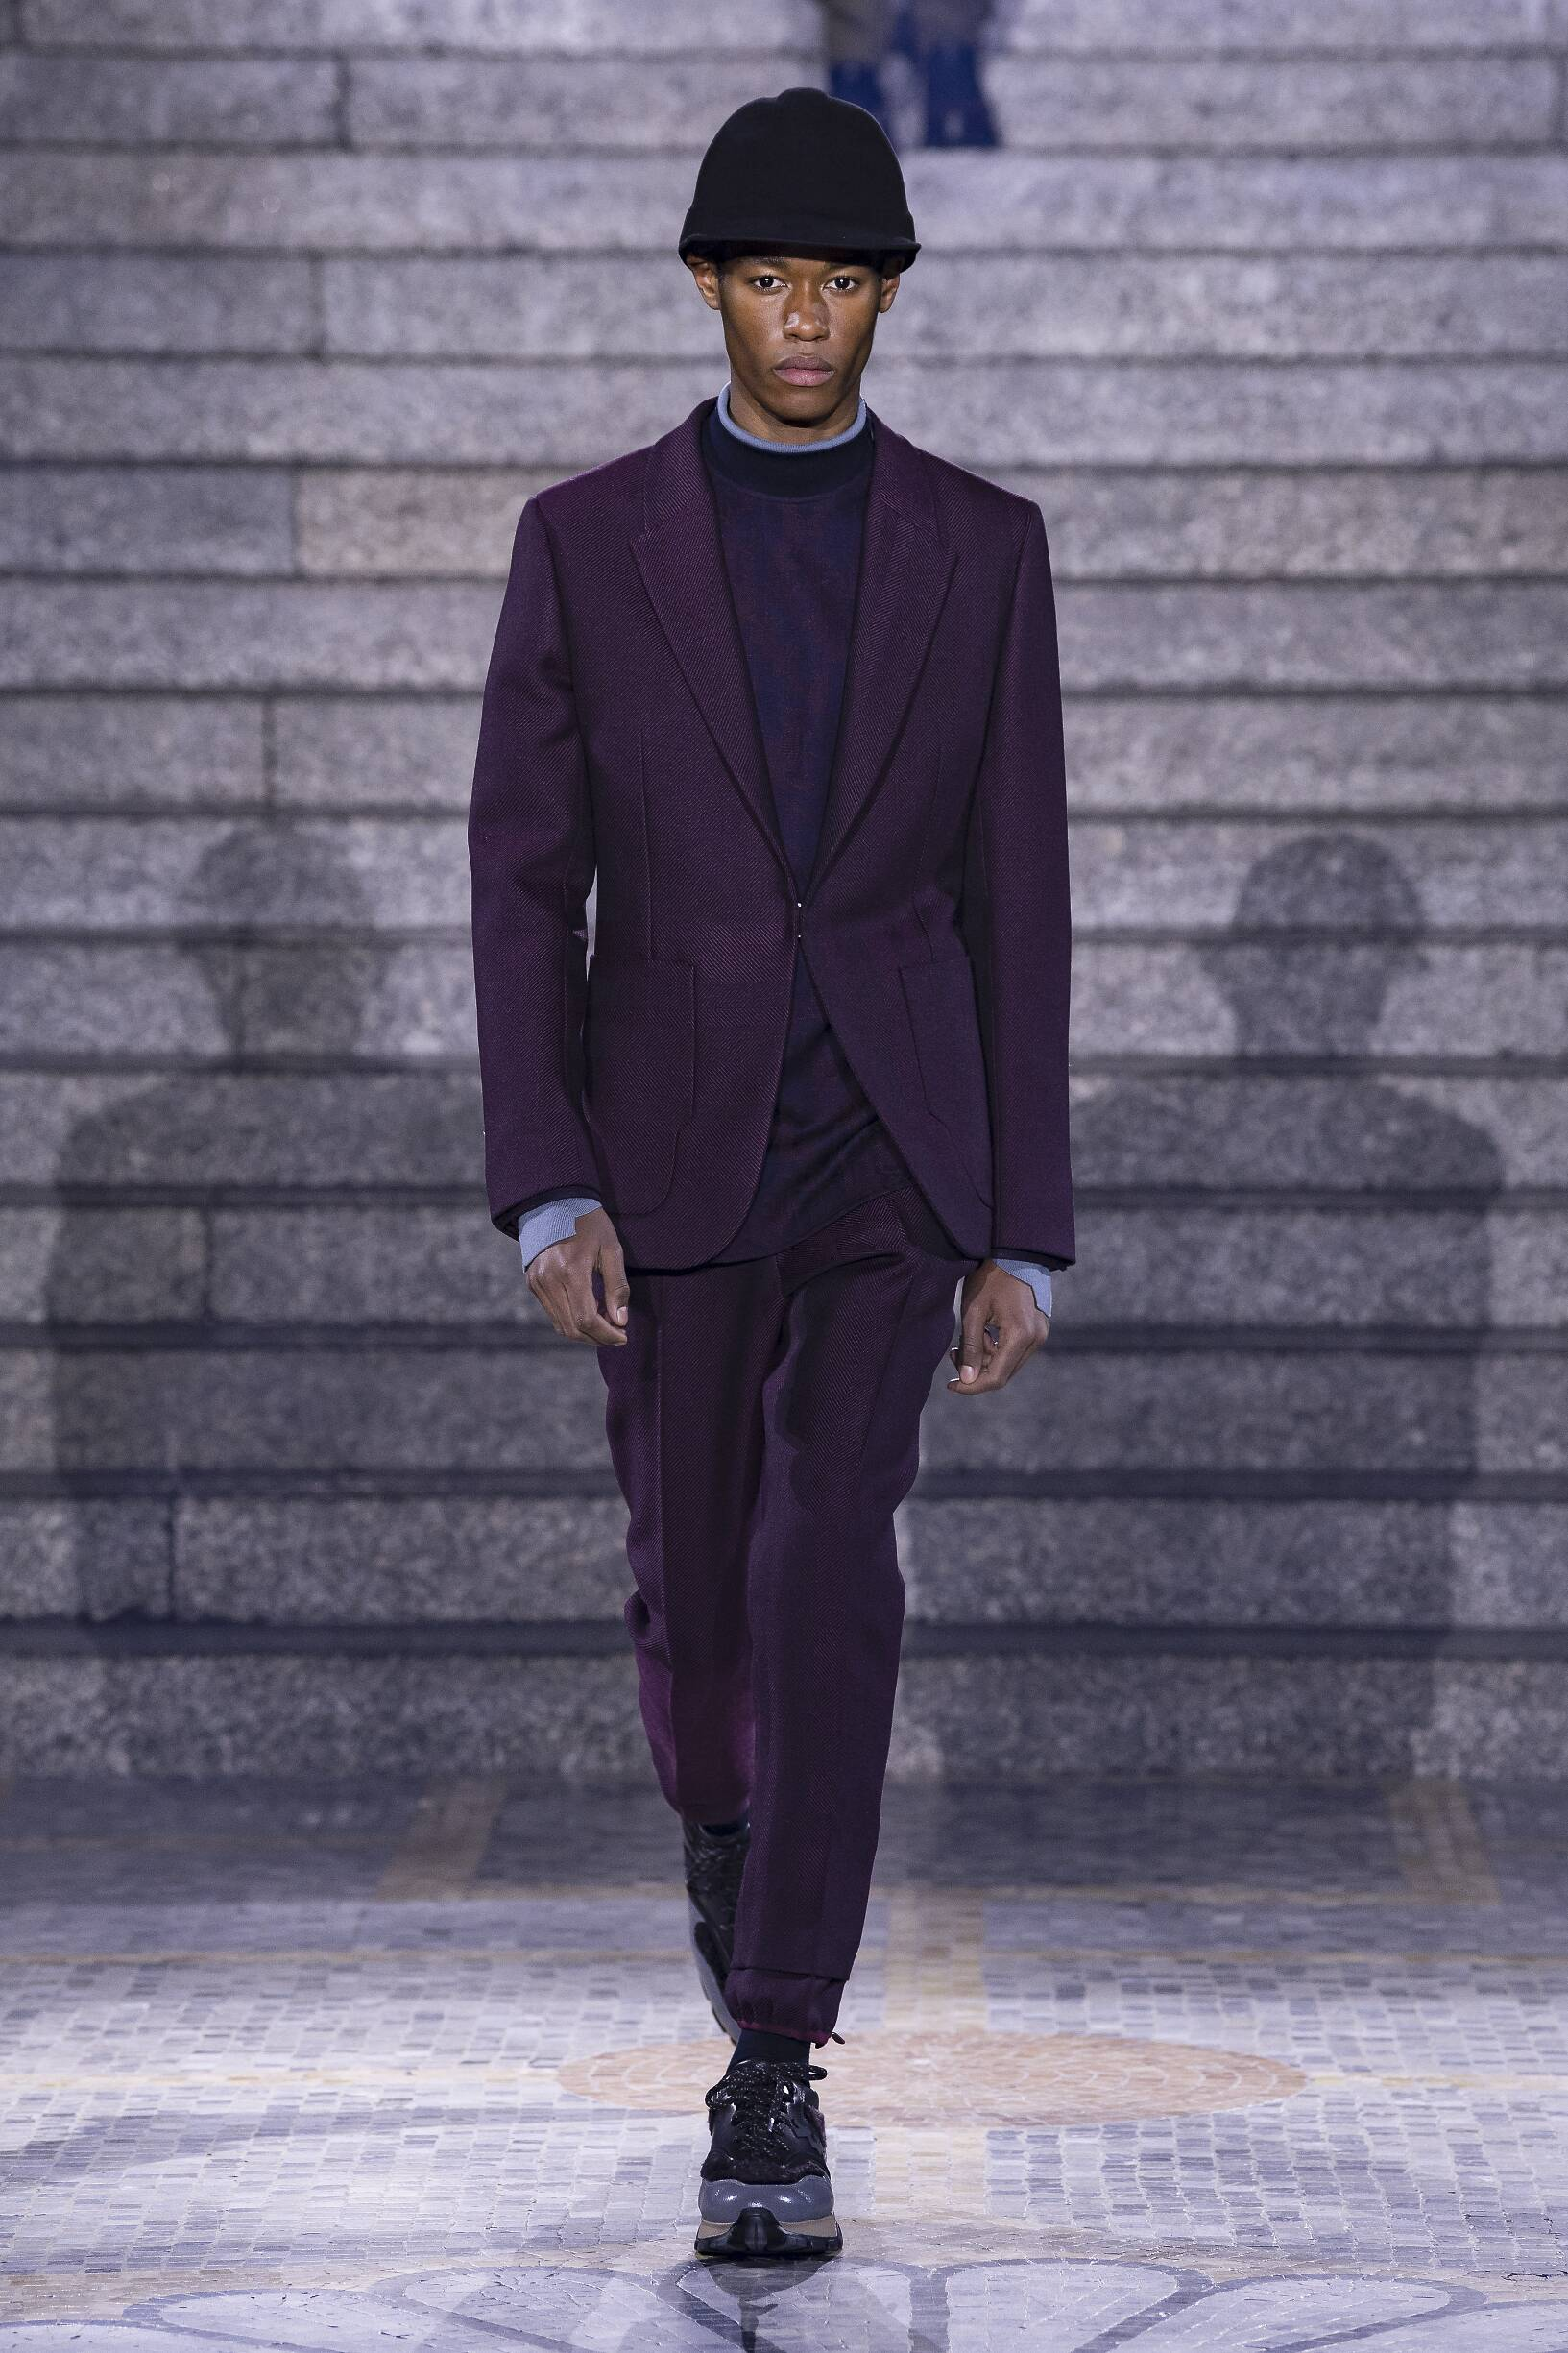 ccddcf8f ERMENEGILDO ZEGNA FALL WINTER 2019 MEN'S COLLECTION | The Skinny Beep